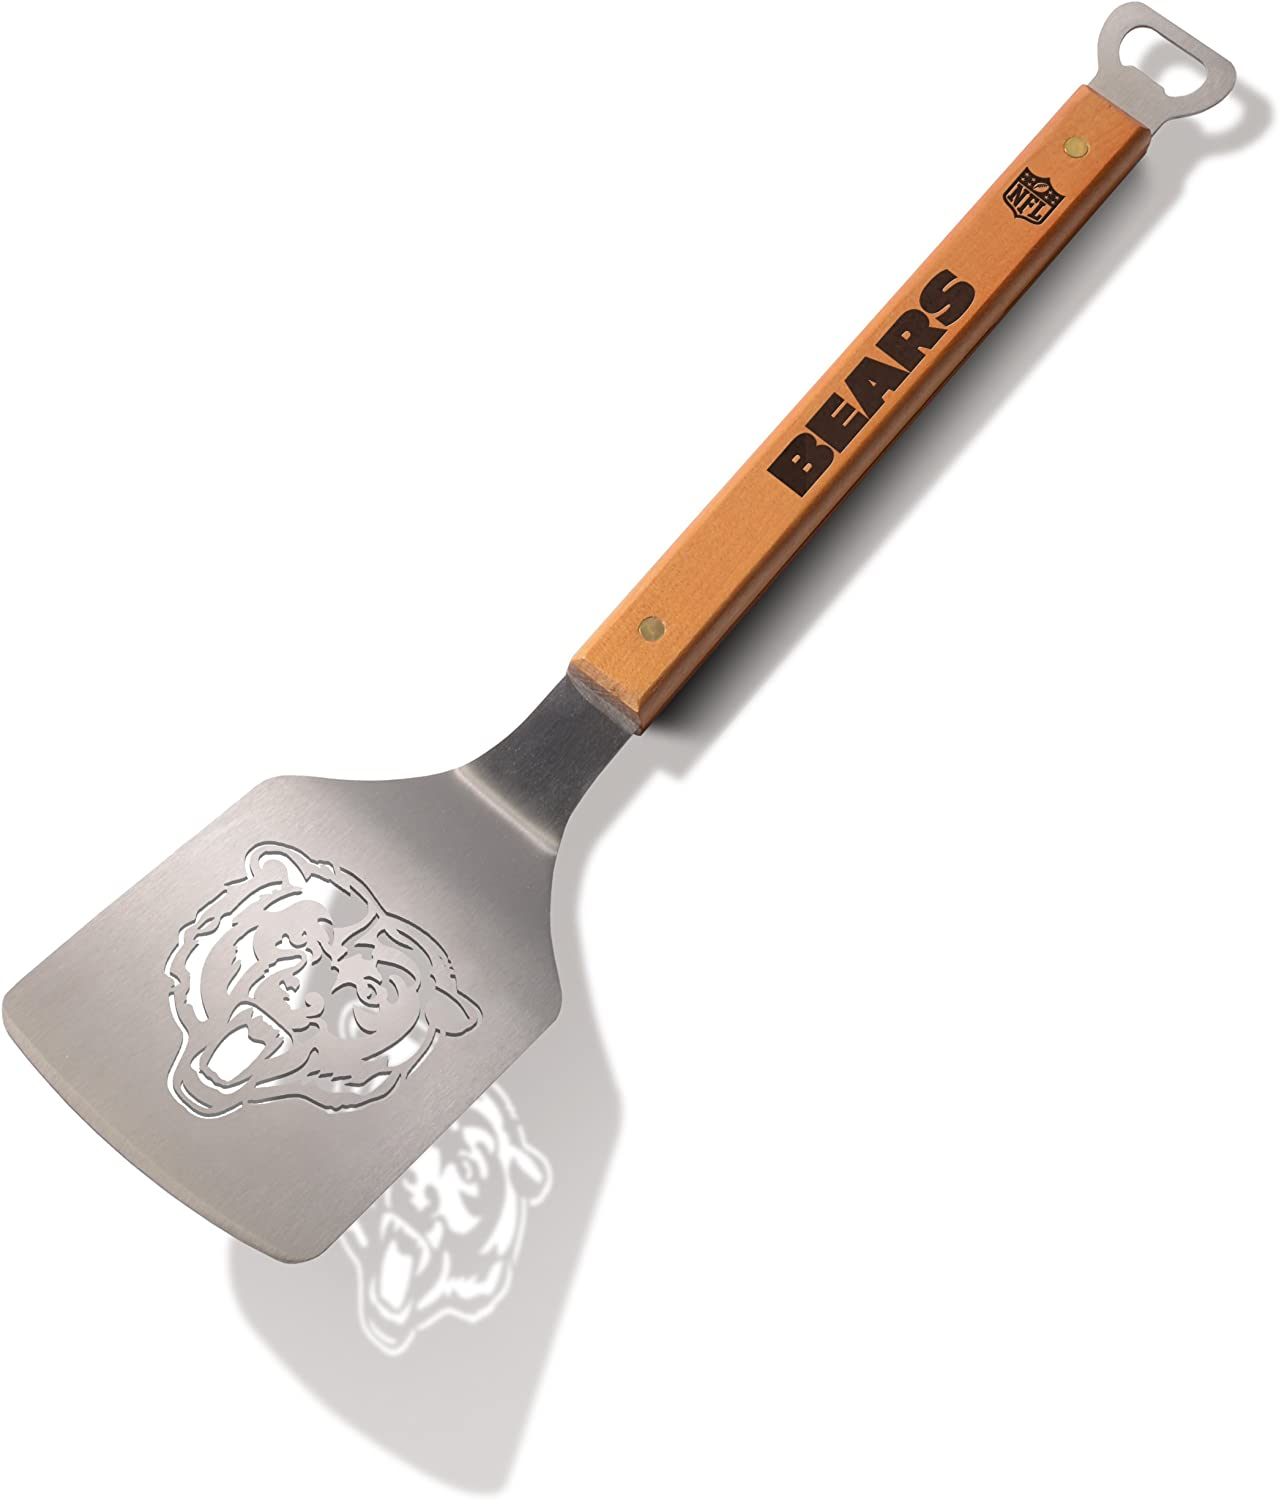 YouTheFan NFL Classic Series Sportula Stainless Steel Grilling Spatula